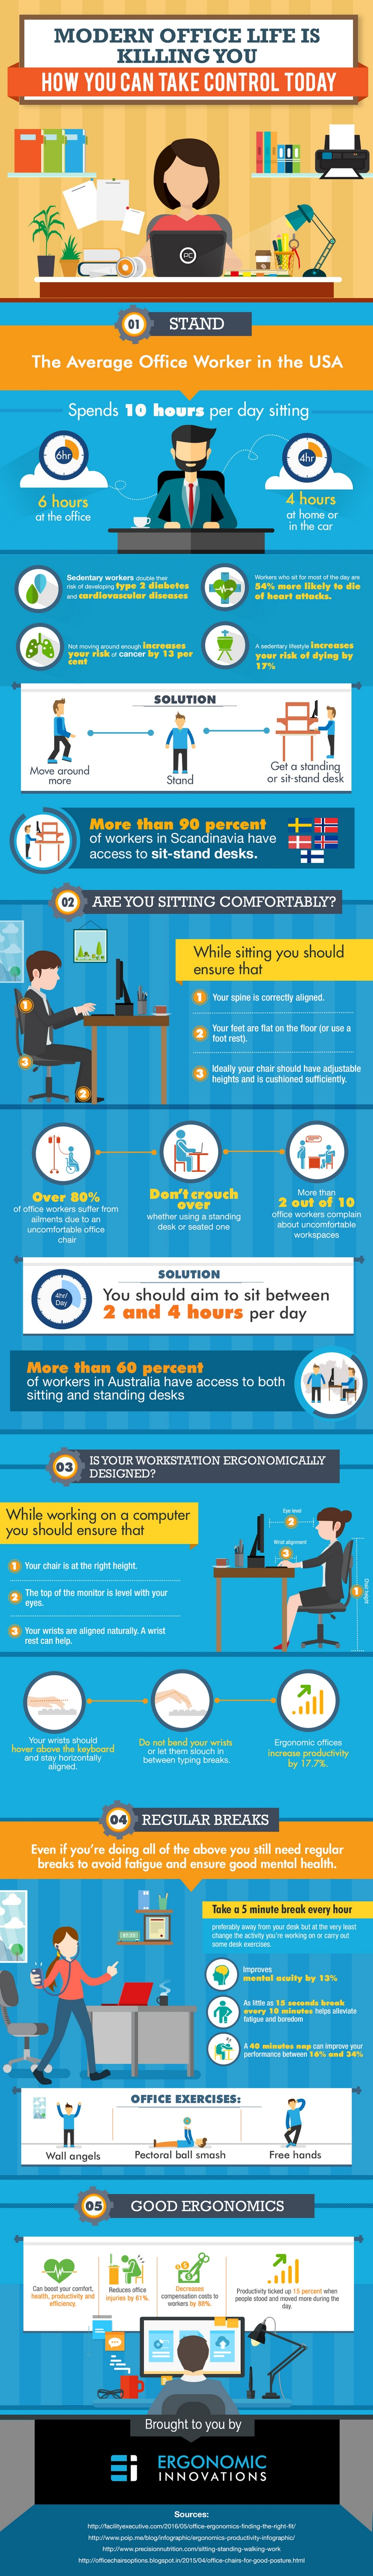 Modern Office Life Is Killing You